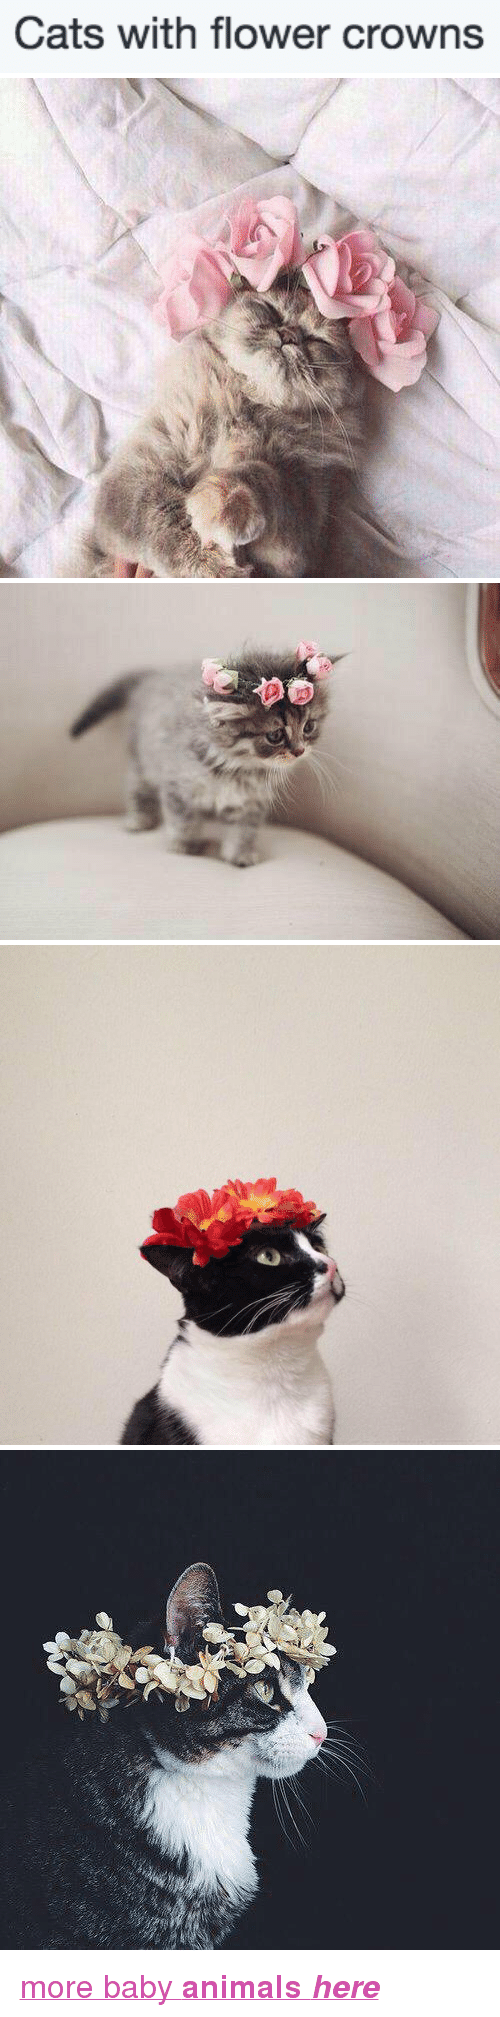 Cats with flower crowns pa hrefhttpbabyanimalgifstumblrcom animals cats and target cats with flower crowns pa izmirmasajfo